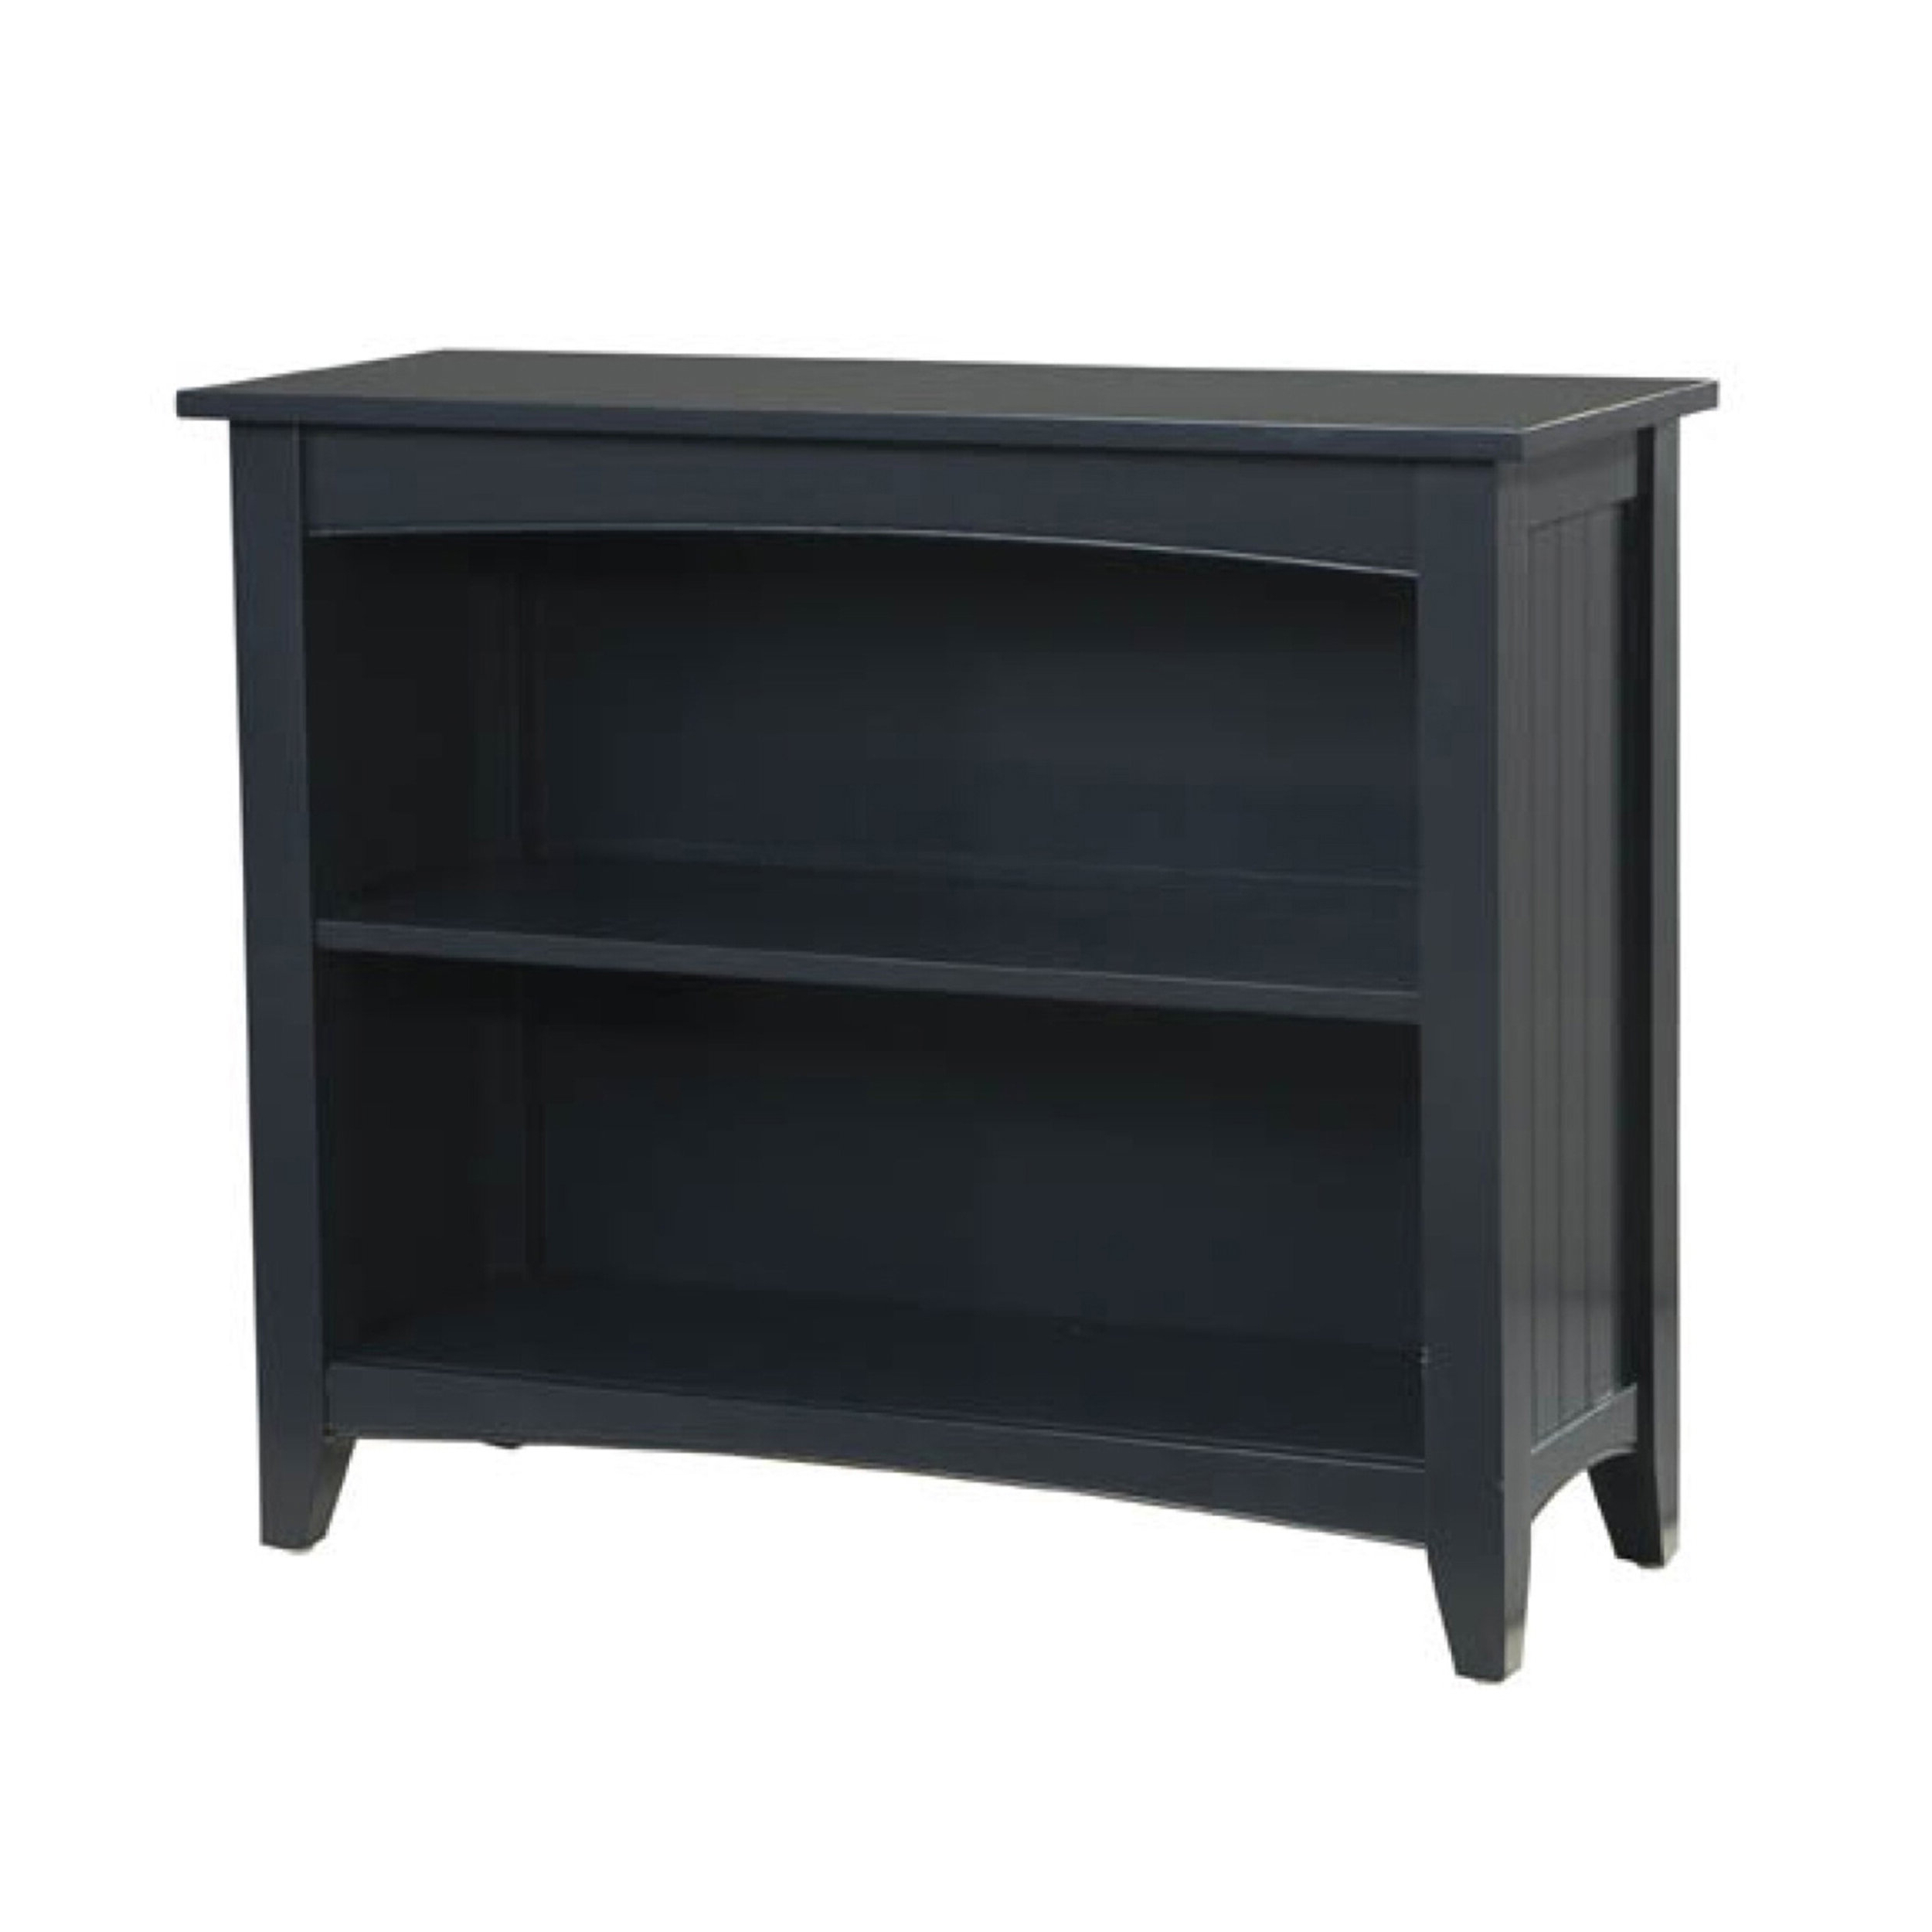 Most Recent Round Hill Standard Bookcase Throughout Martinsville Standard Bookcases (View 14 of 20)